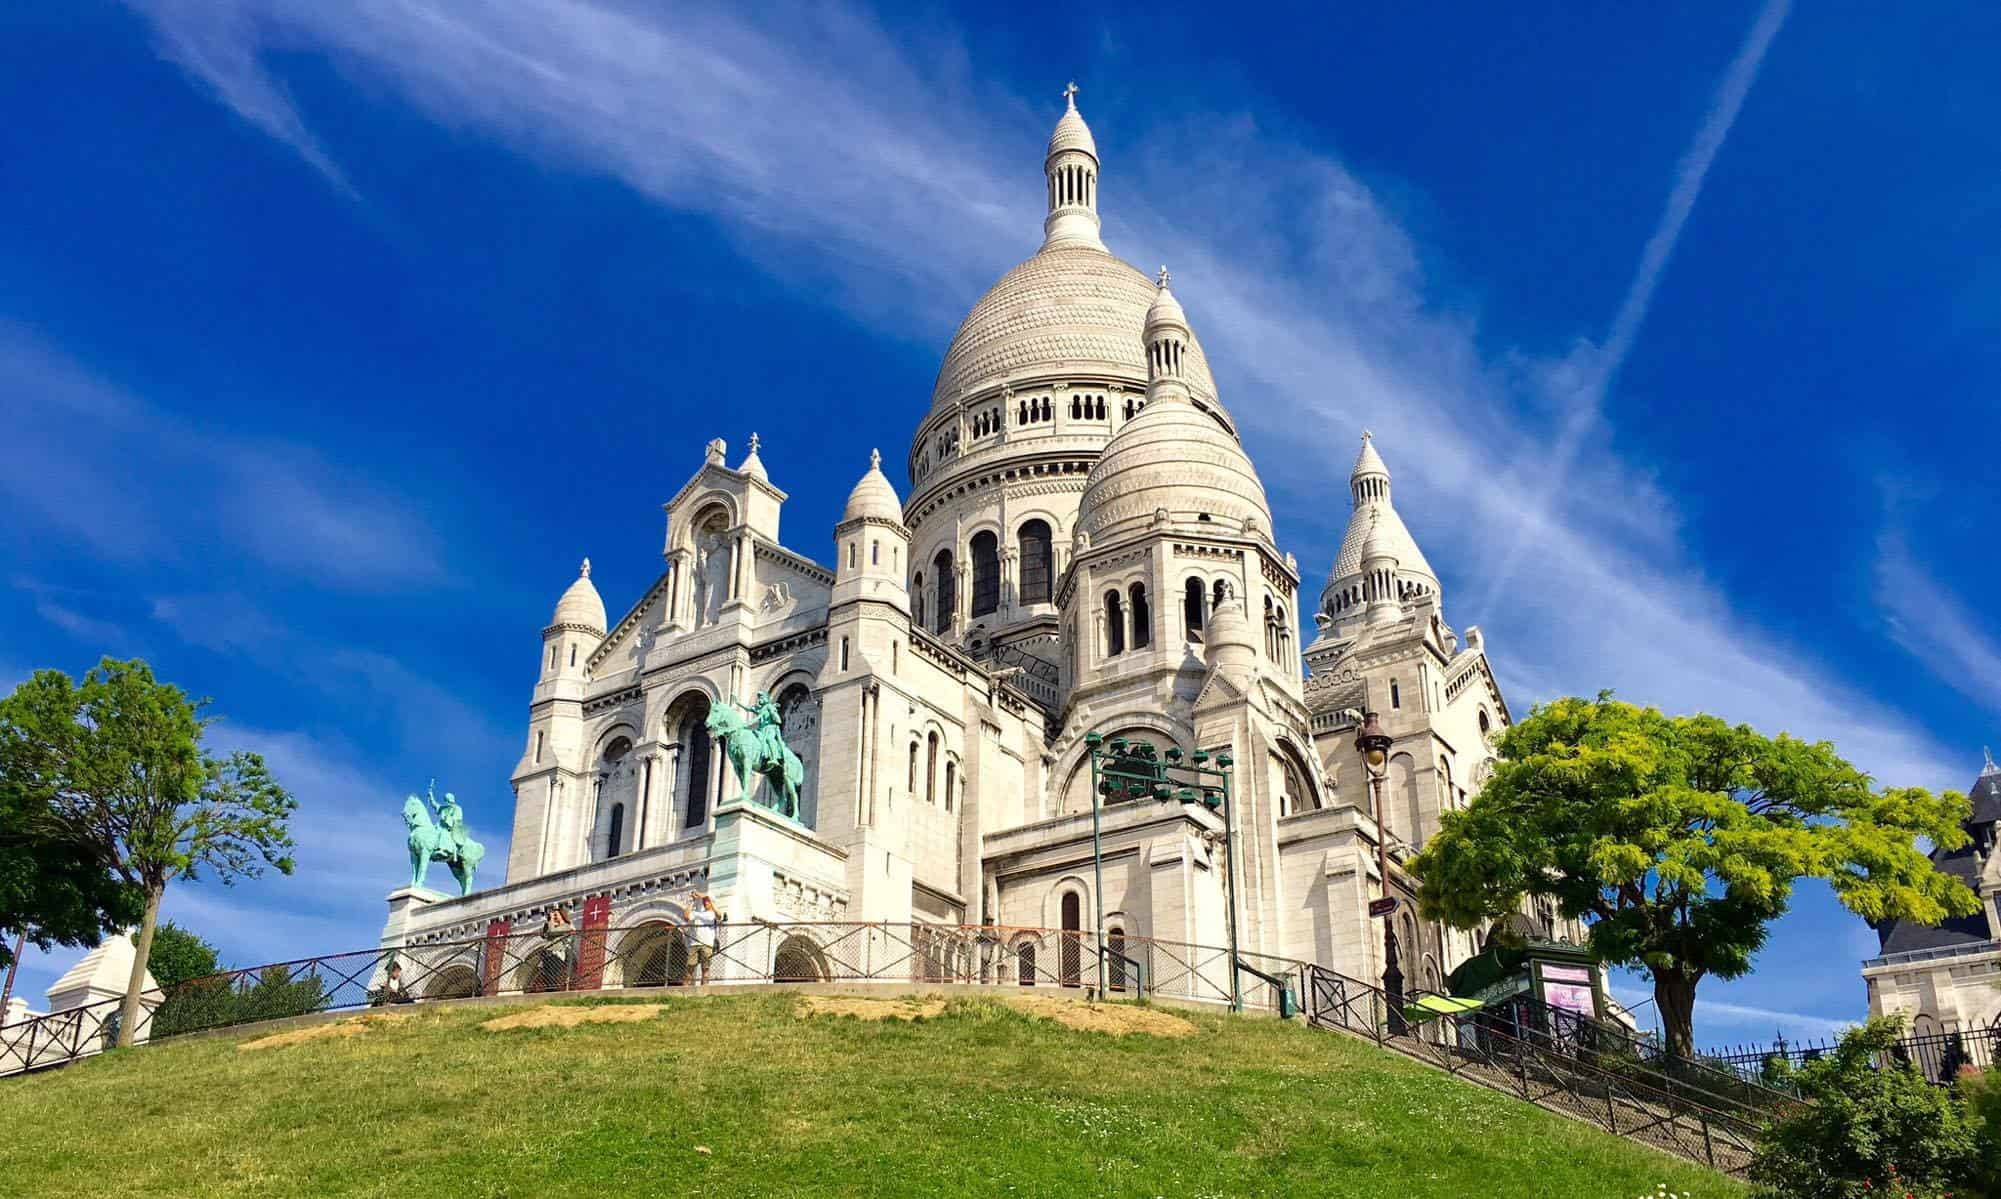 Top 10 Fun Facts About The Sacre Coeur